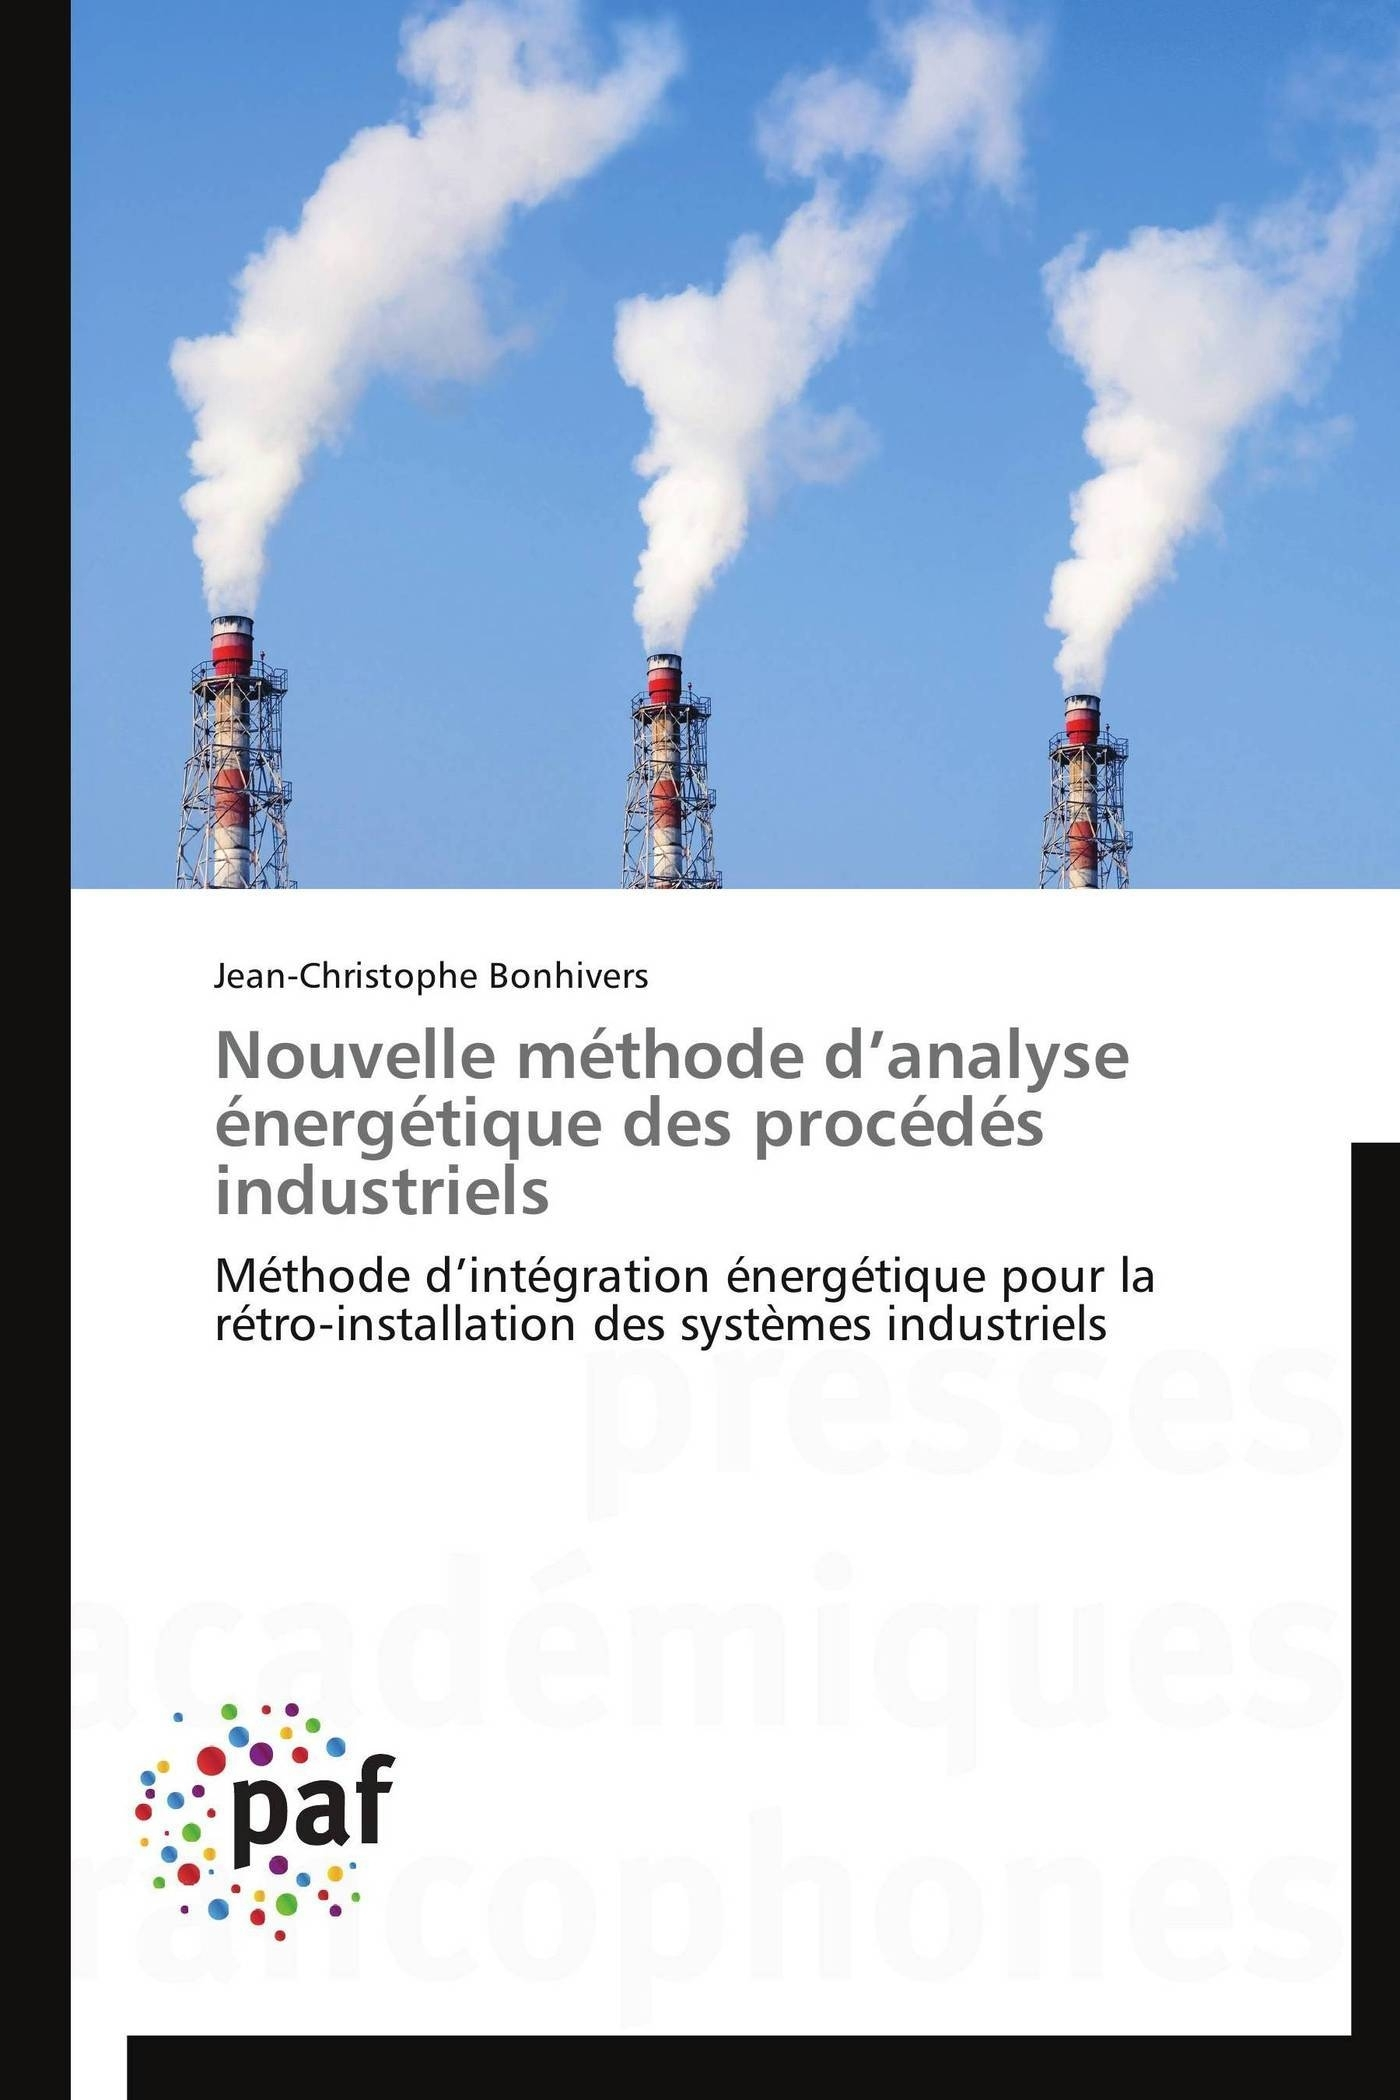 NOUVELLE METHODE D ANALYSE ENERGETIQUE DES PROCEDES INDUSTRIELS